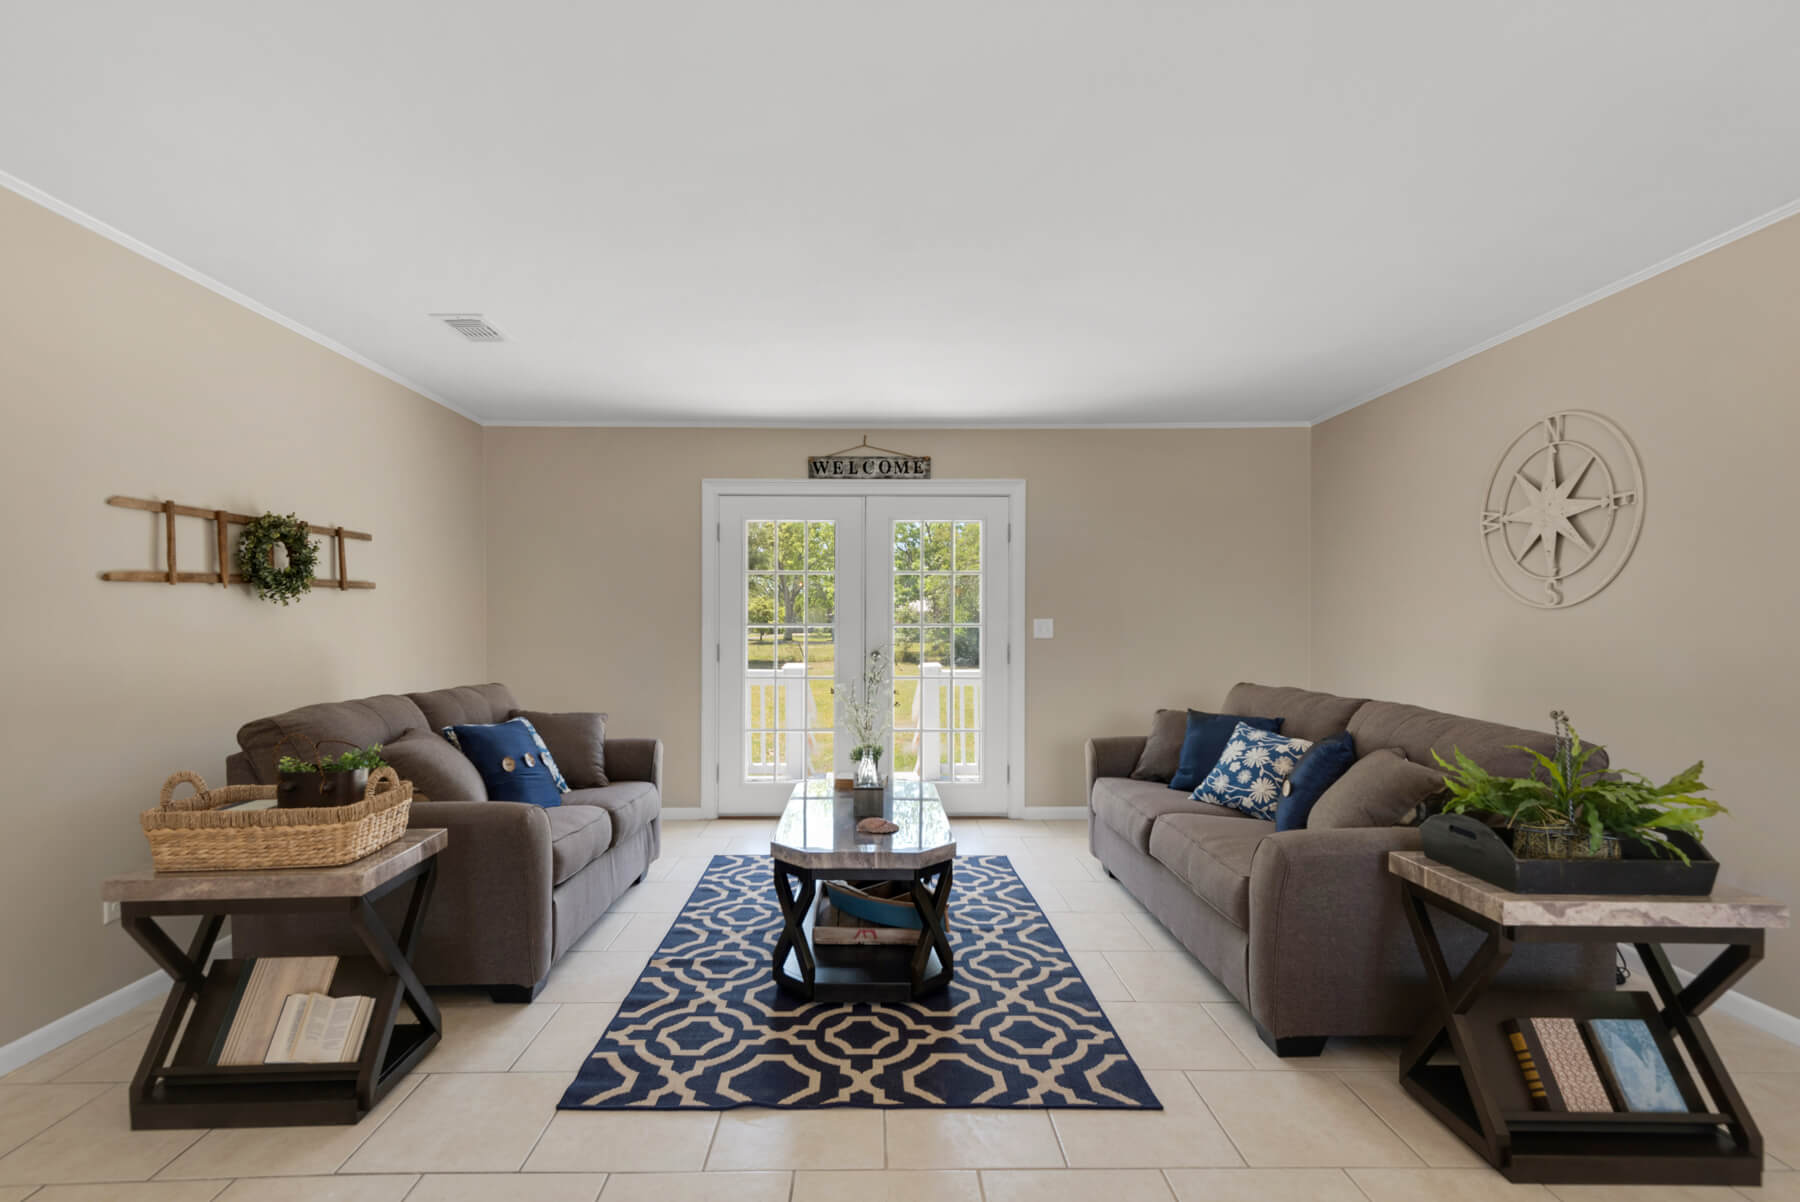 7466 Twin Beech Road Fairhope for Sale Urban Property living room view 8